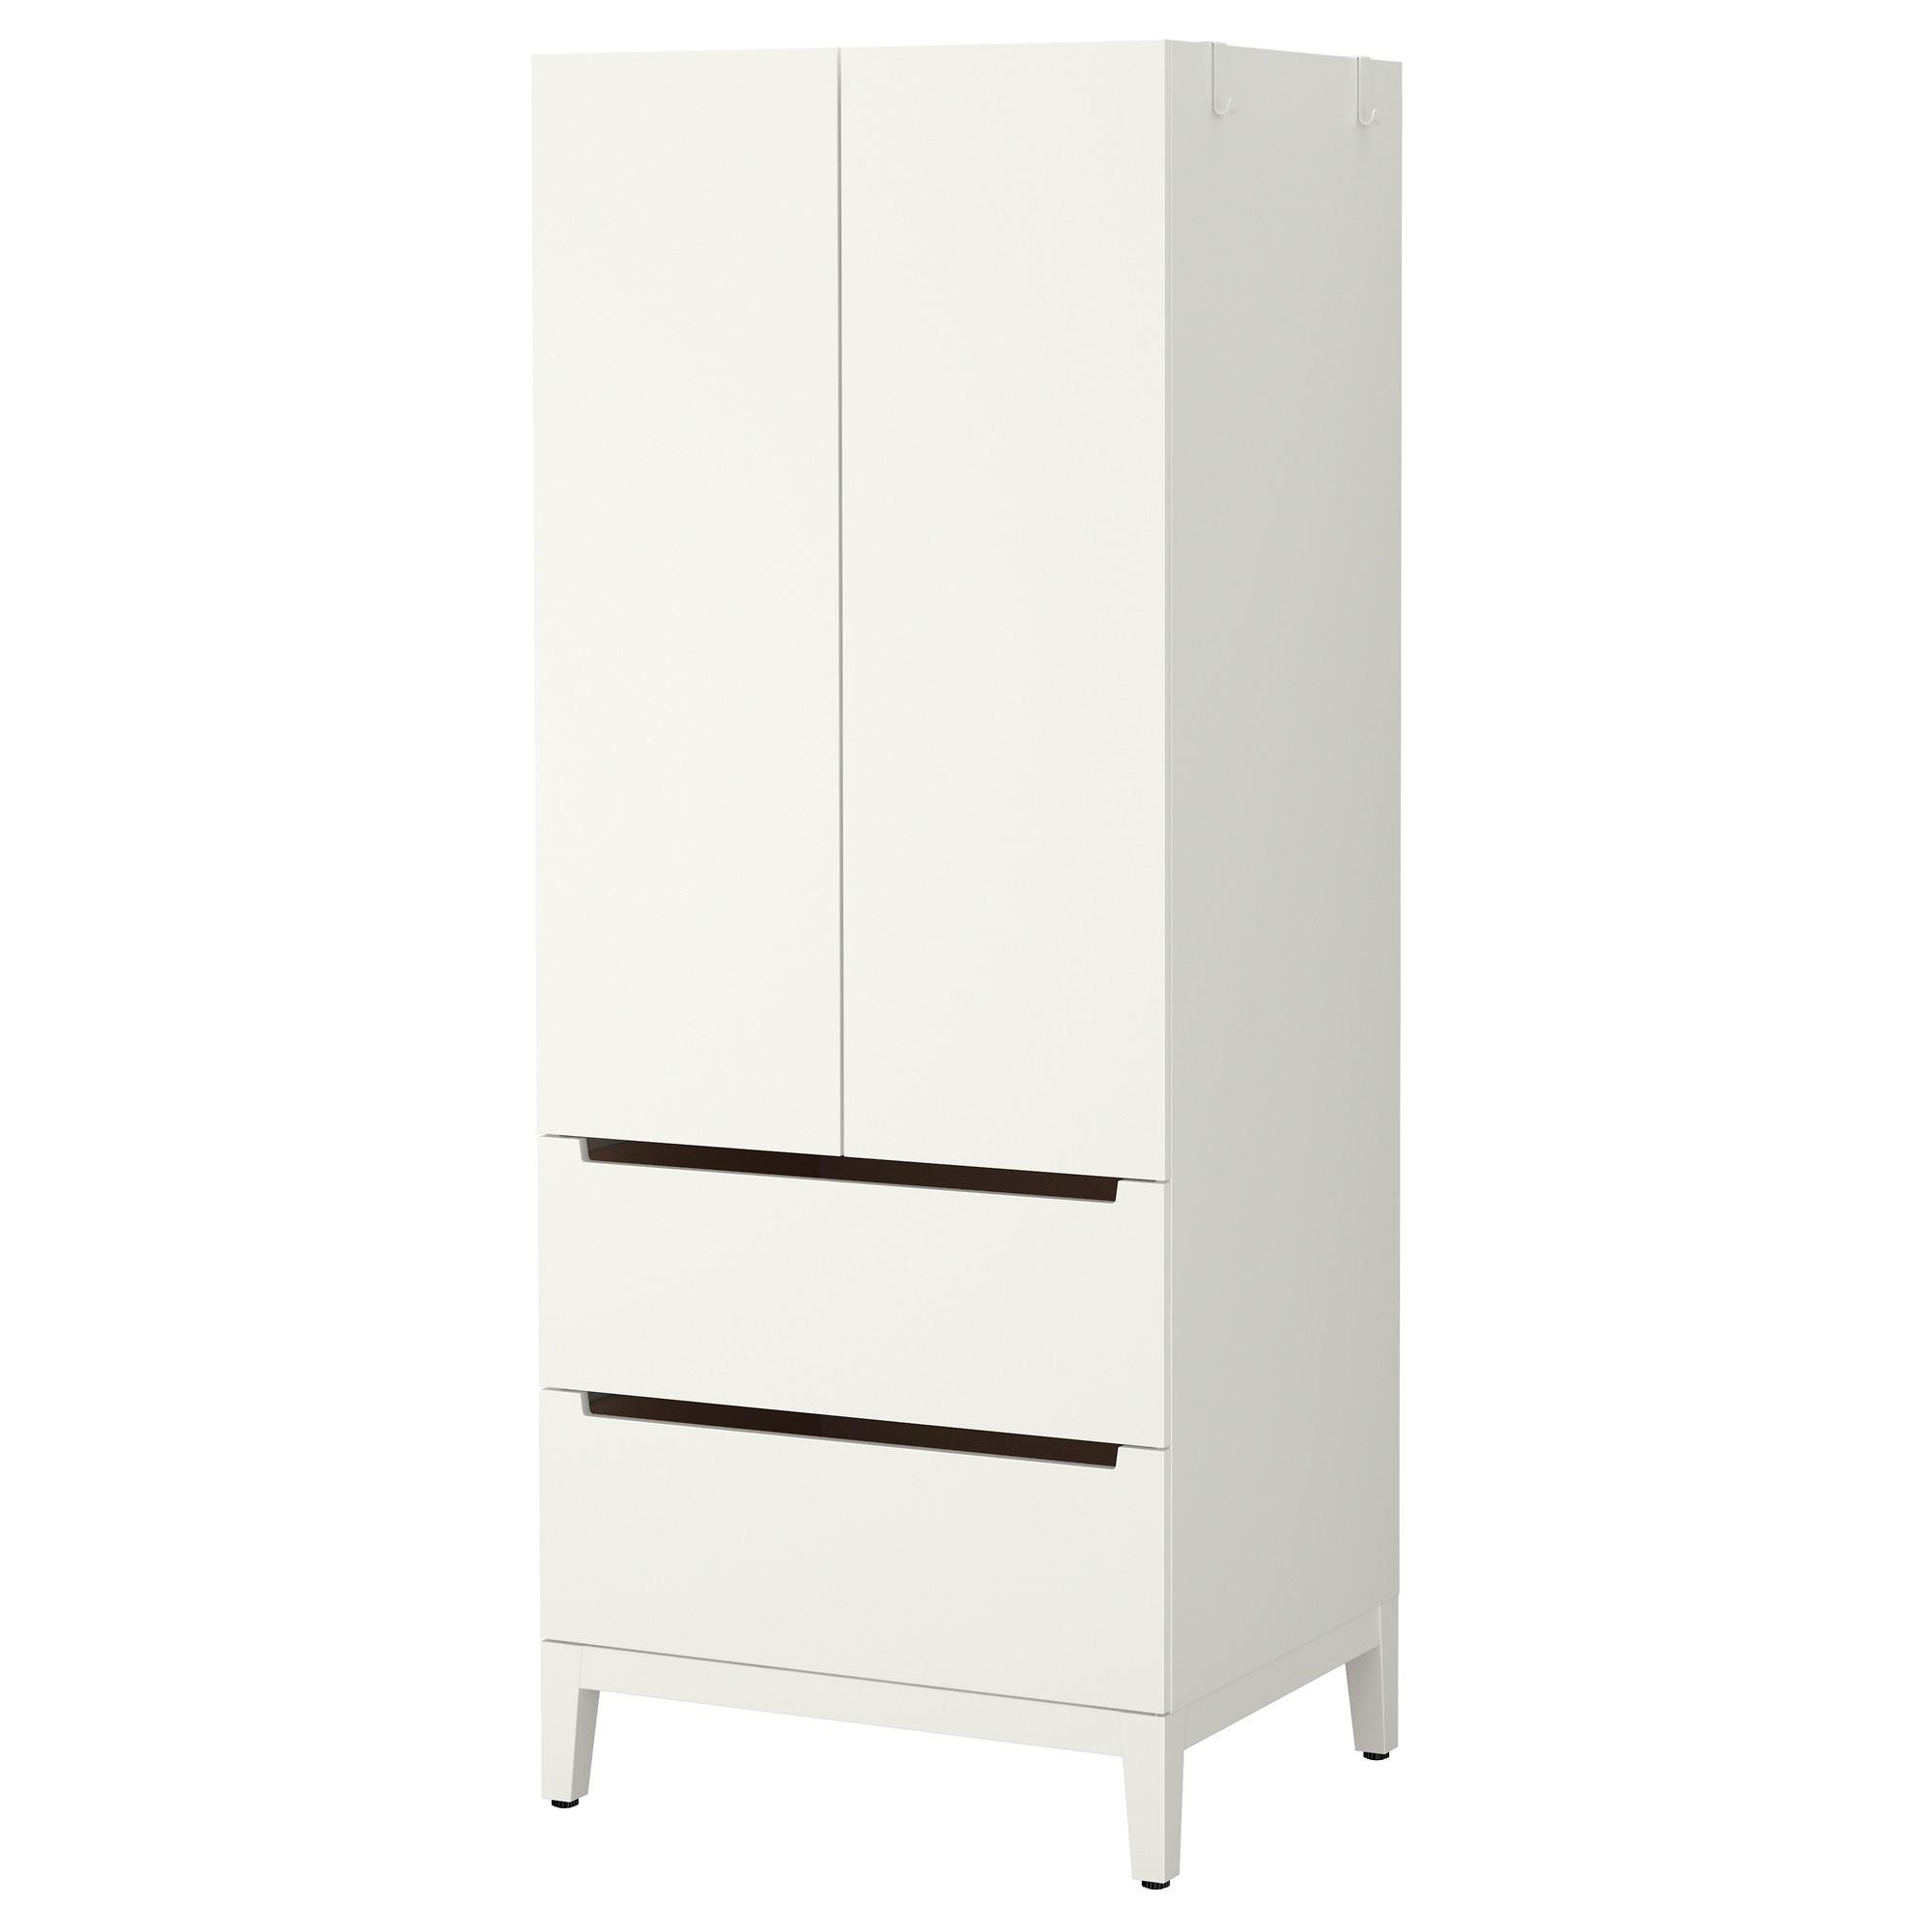 Amazing NORDLI Wardrobe - IKEA white wardrobe with drawers